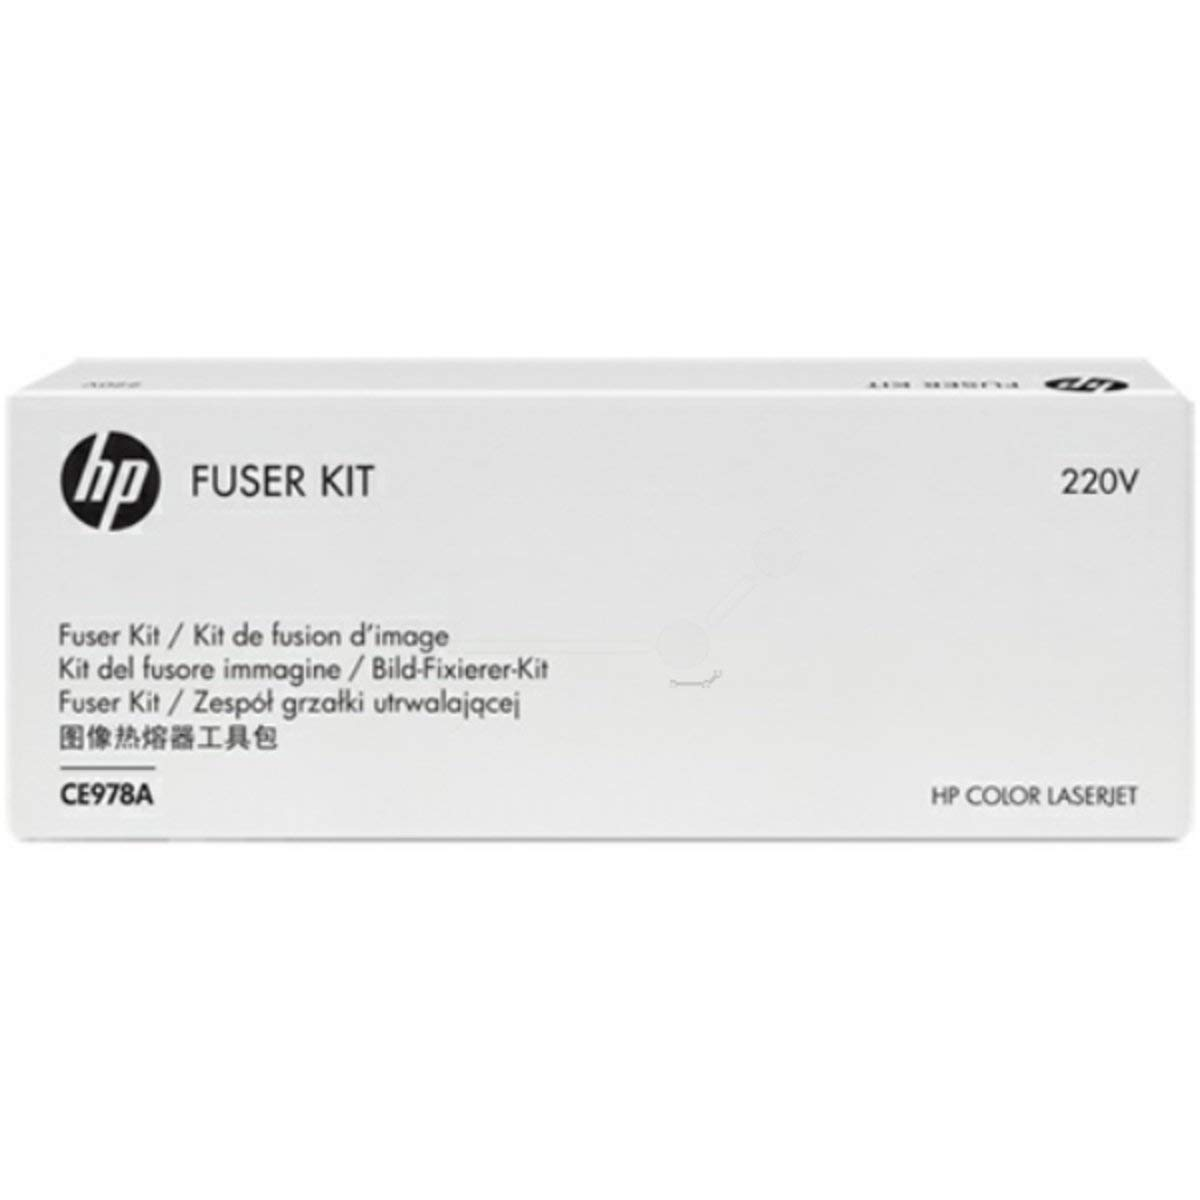 HP Color LaserJet CE978A 220V Fuser Kit